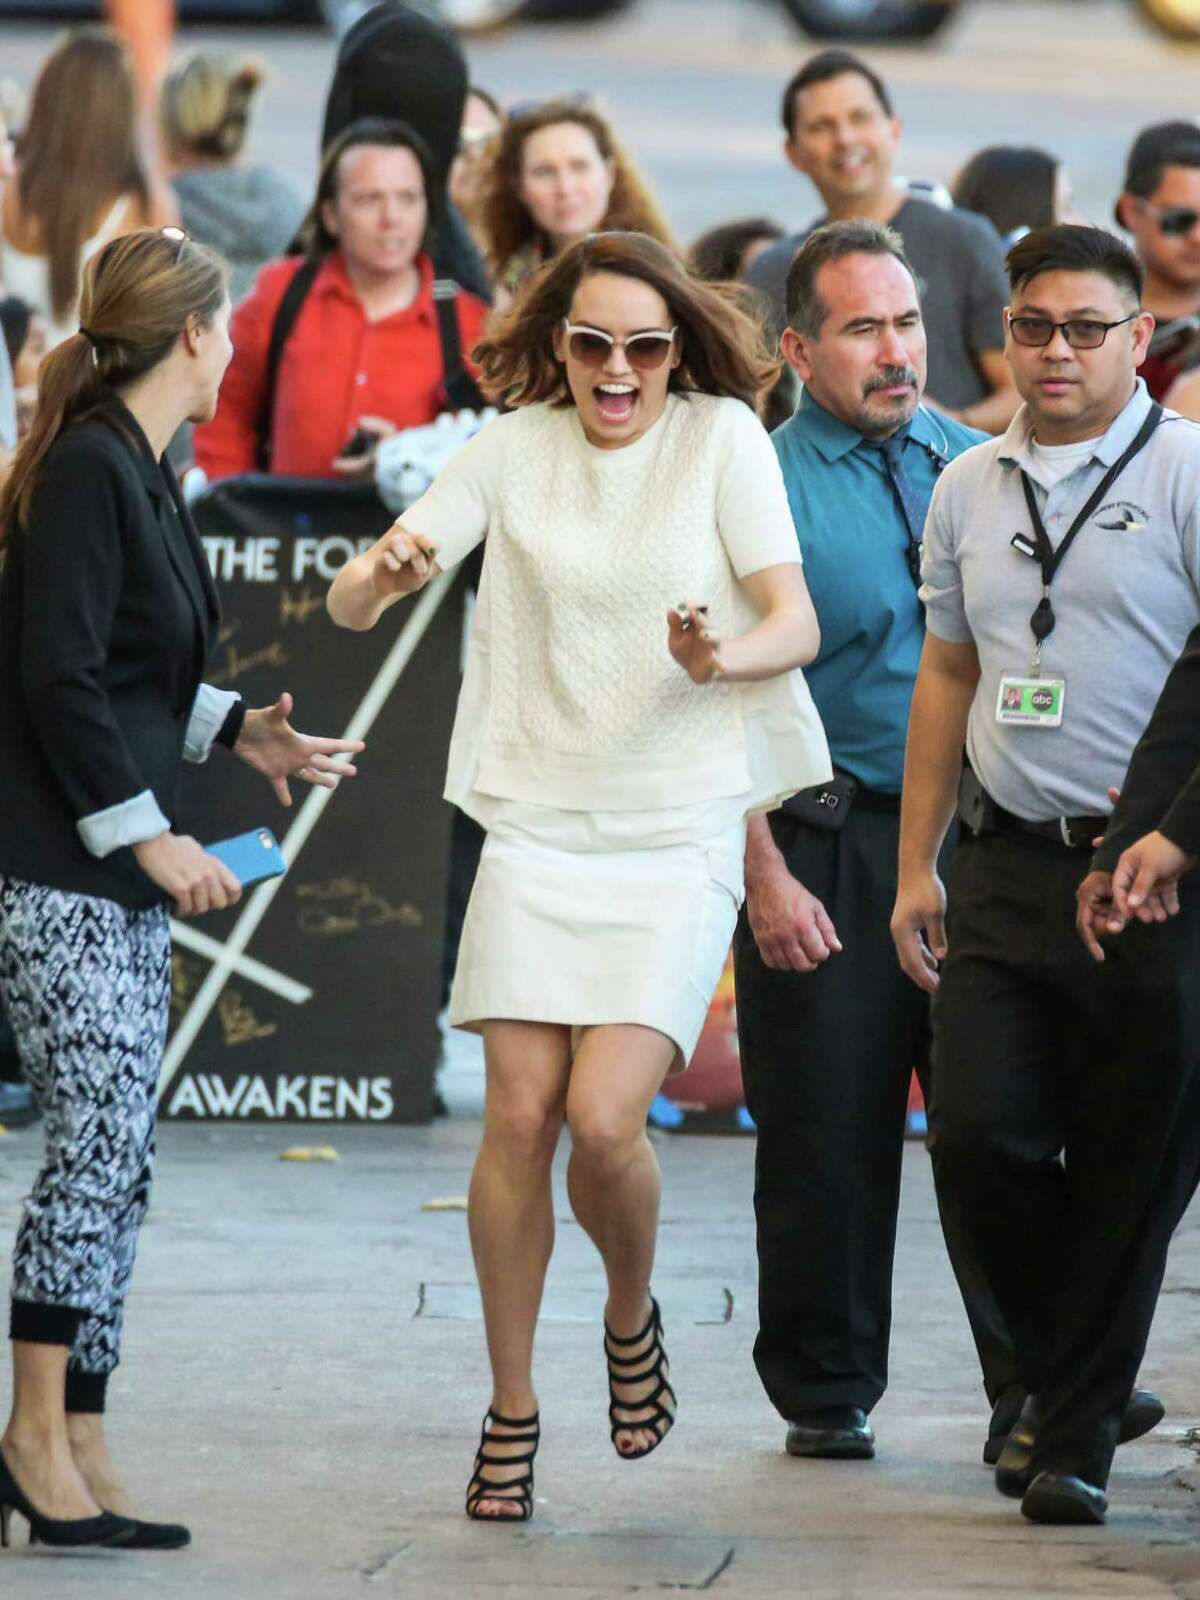 That time you were sooooo excited you freaked everyone out? ... Daisy Ridley is seen at 'Jimmy Kimmel Live' on November 23, 2015 in Los Angeles, California.After cruising this gallery check out the galleries for May - June - July - August - September - October.